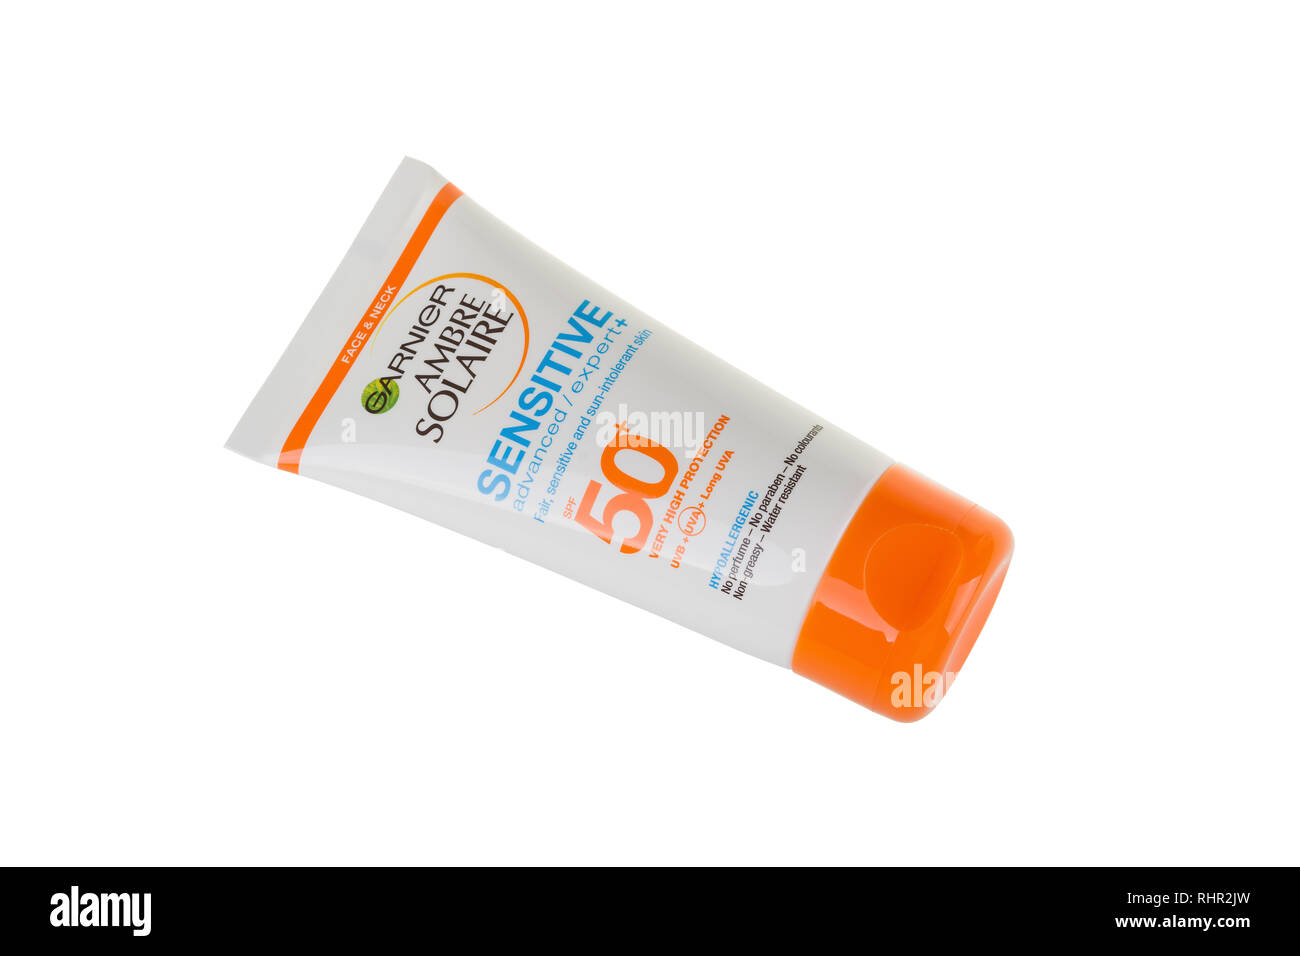 BURGAS, BULGARIA - MAY 22, 2017: Garnier Ambre Solaire Sensitive Face and Neck Sun Cream SPF50, 50ml isolated on white, with clipping path. Stock Photo